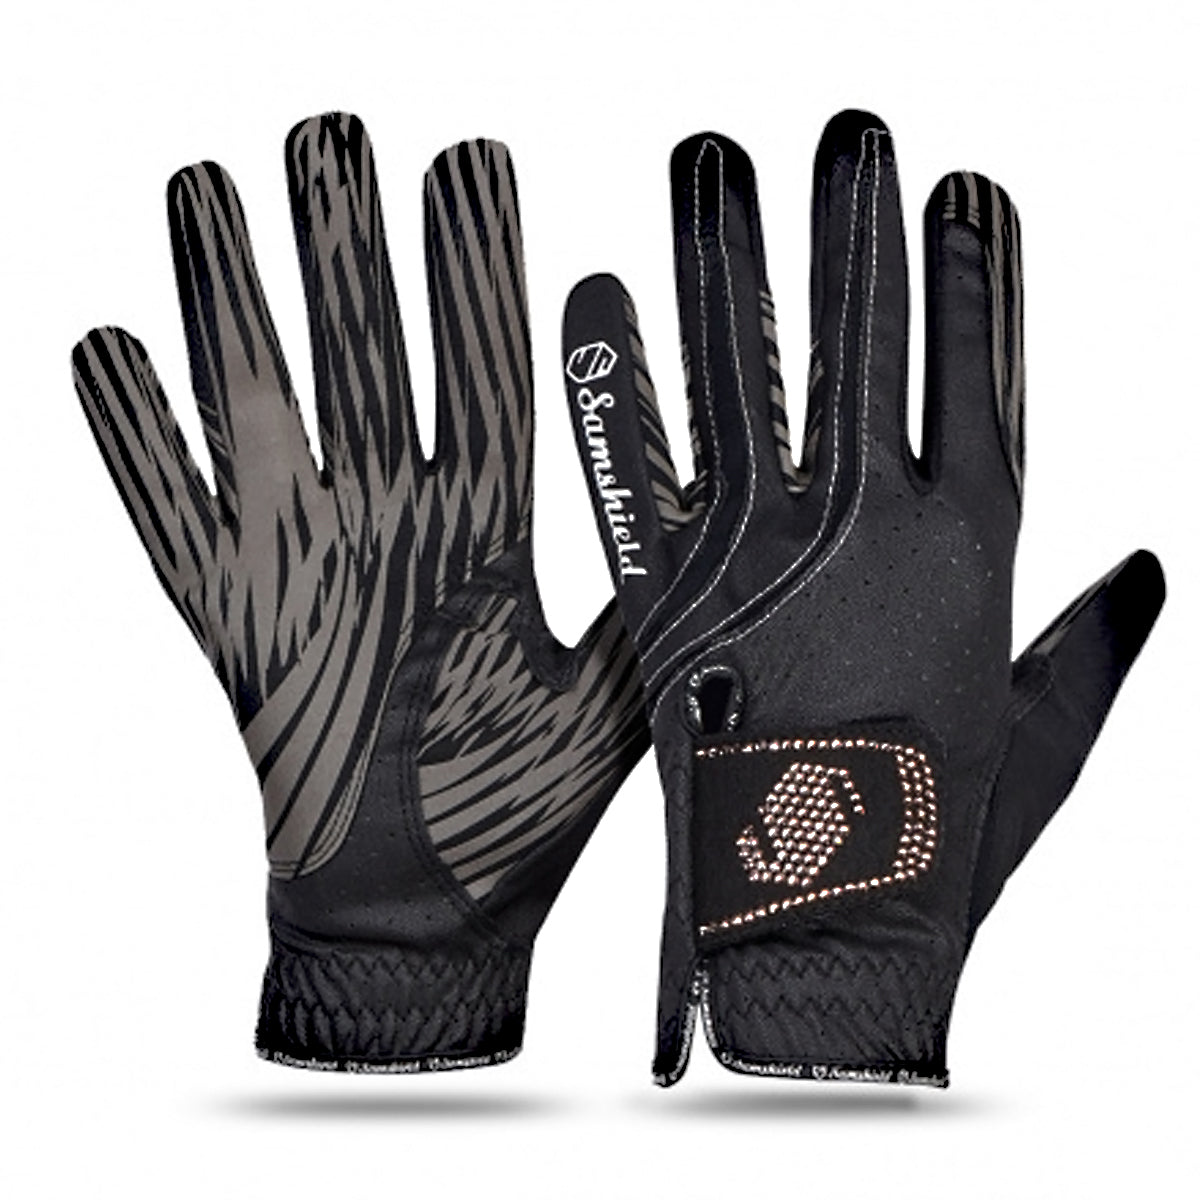 Samshield V Skin Swarovski Gloves- Rose Gold Crystals